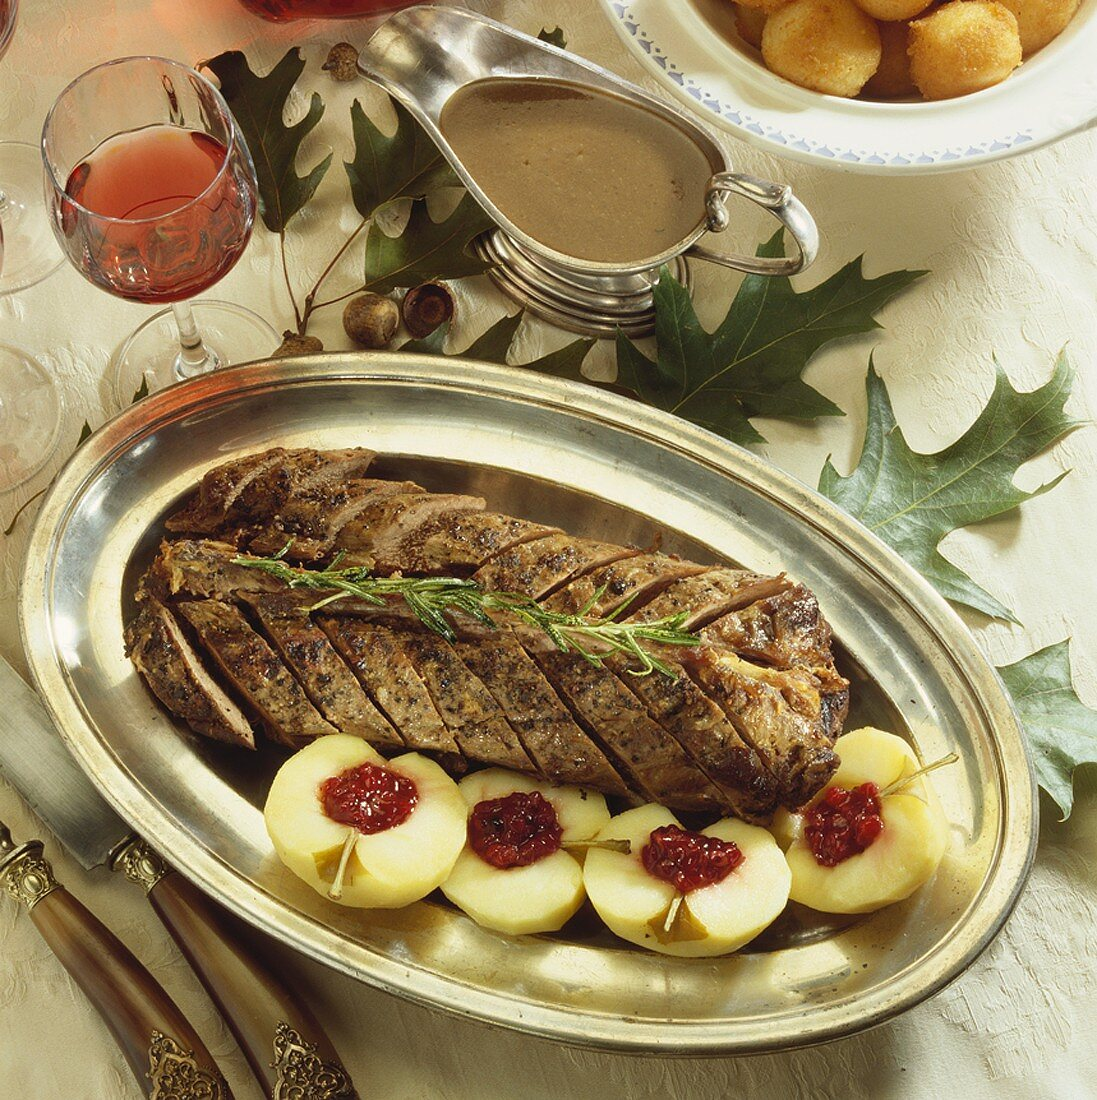 Saddle of venison with apples and cranberries